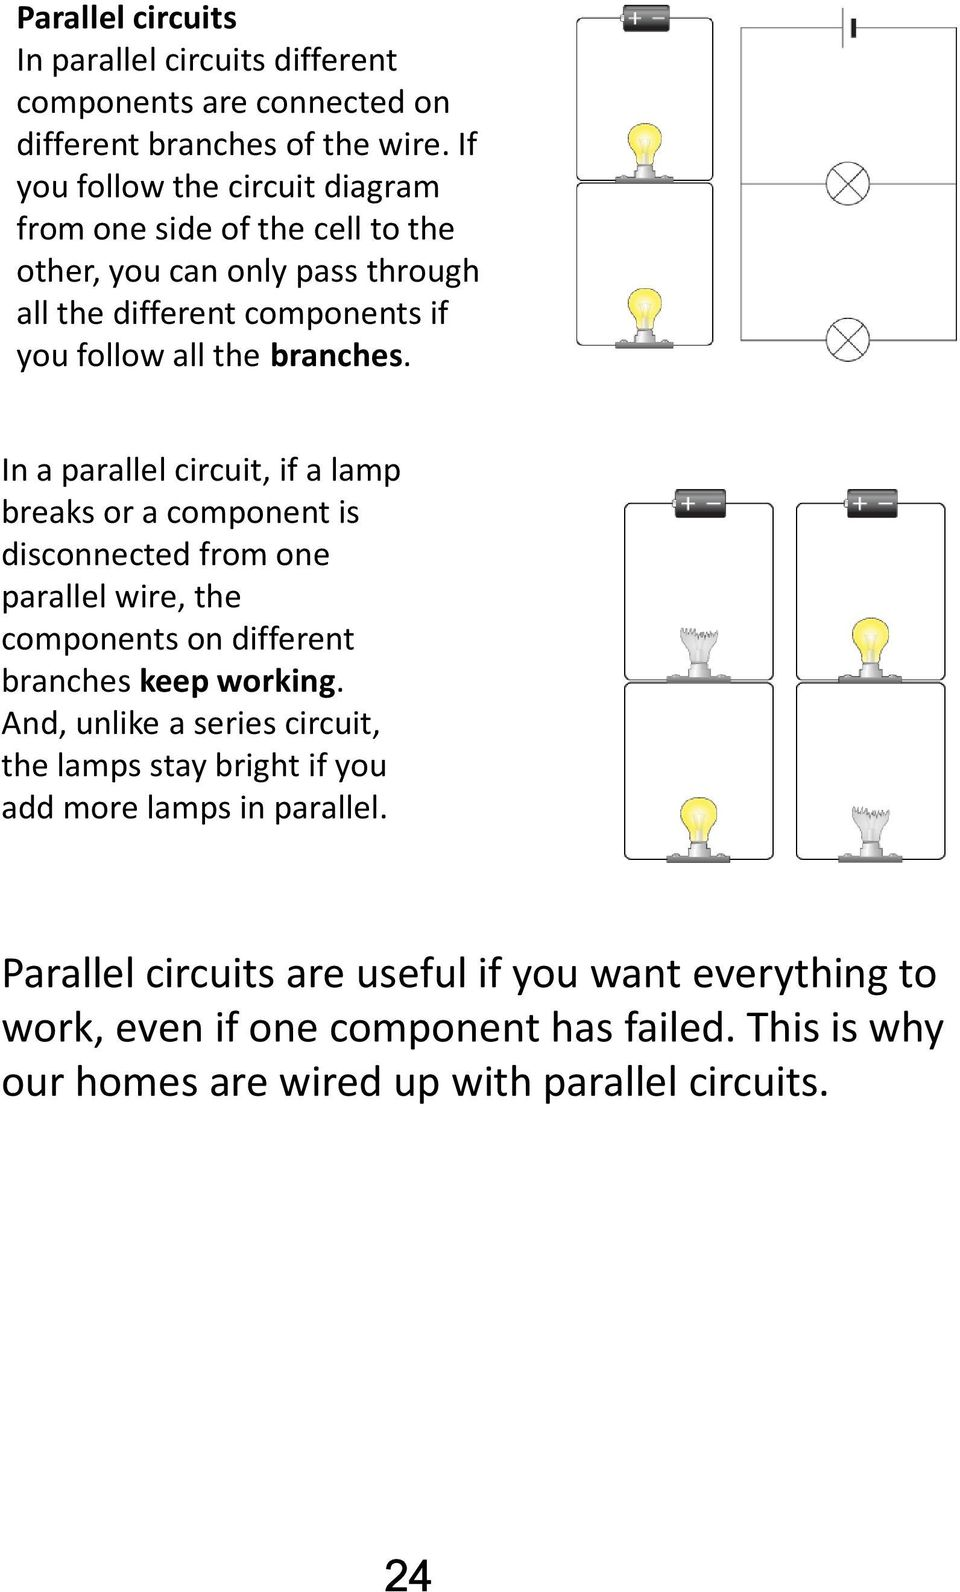 Electricity Unit Science And Technolgy Cycle 3 Name Group Teacher Compare The Circuits Series Circuit Parallel Dimmer Bulbs In A If Lamp Breaks Or Component Is Disconnected From One